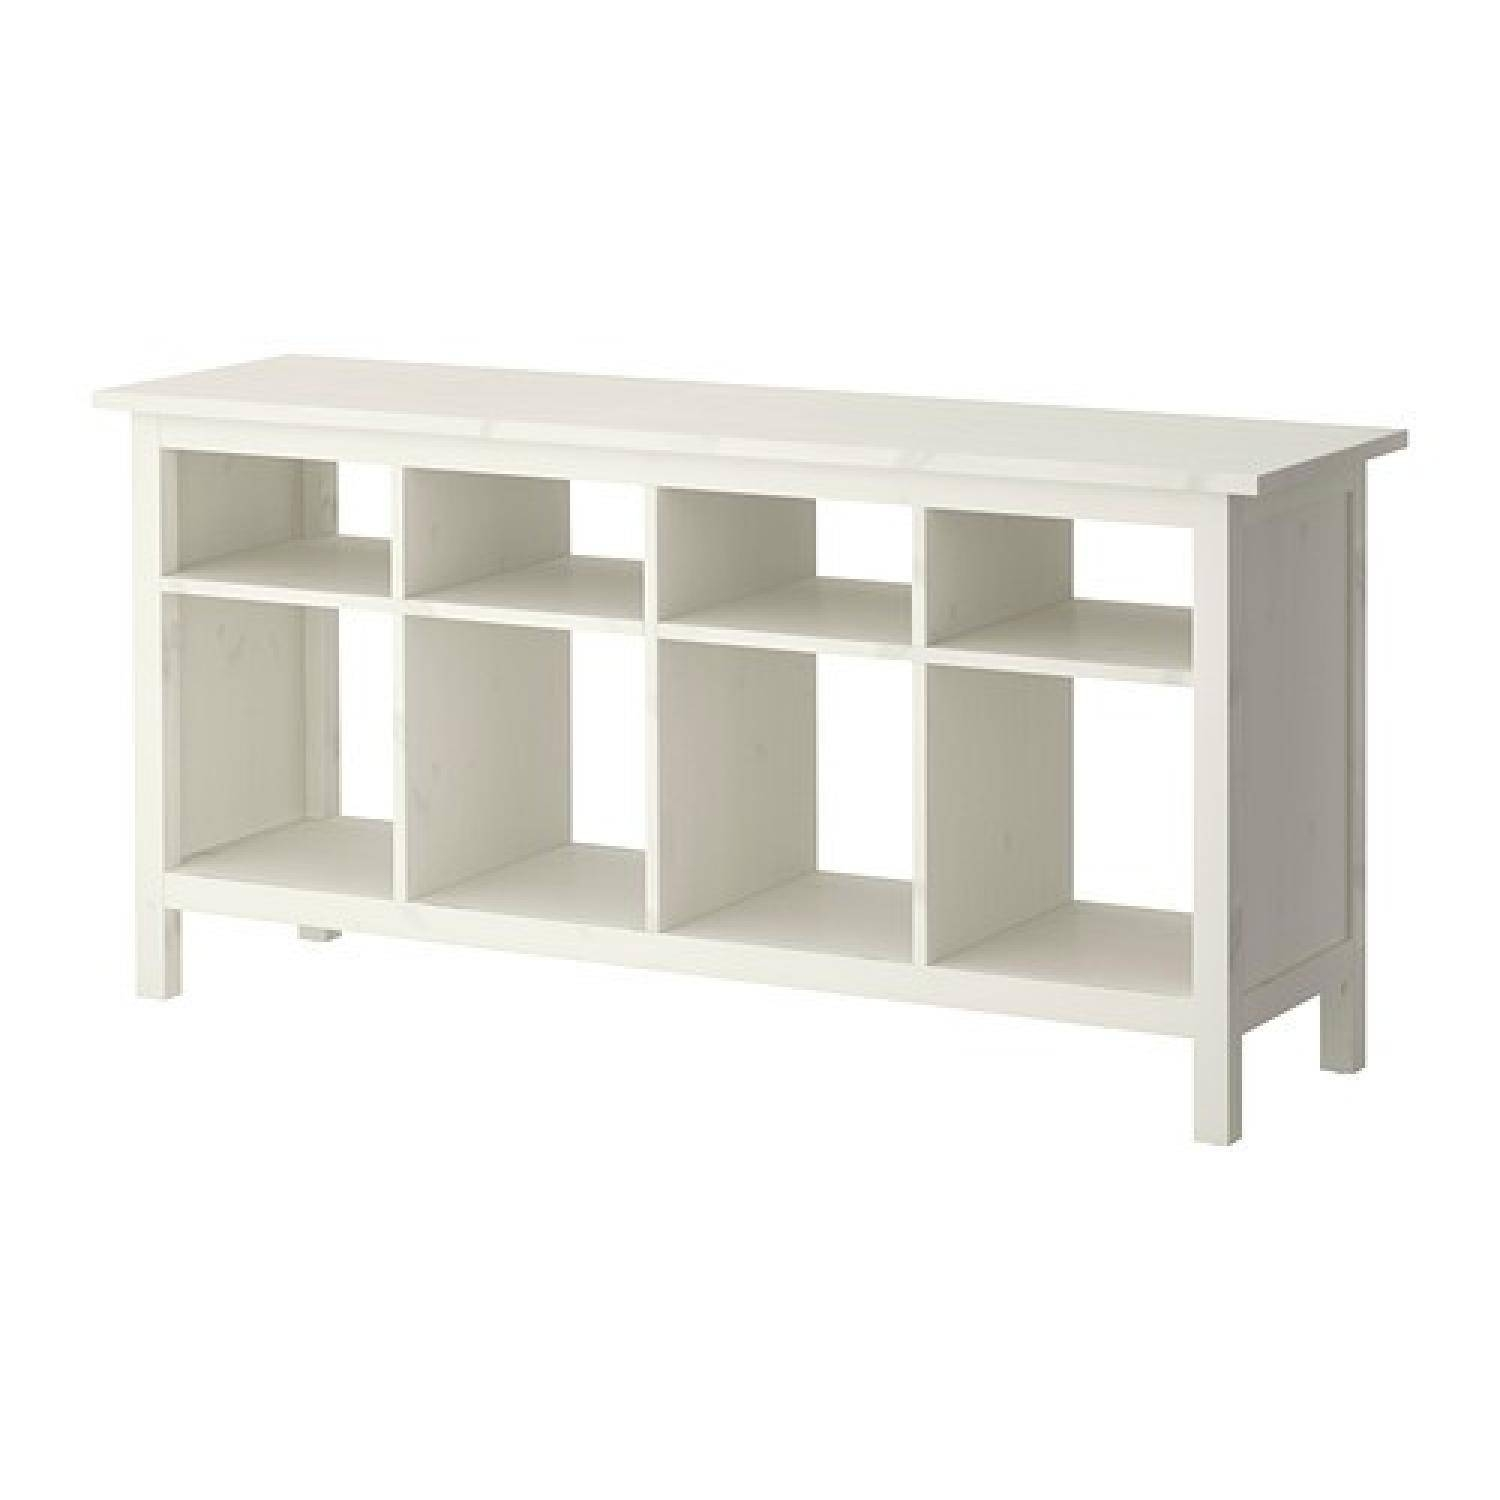 Ikea Hemnes Console Table - Aptdeco inside Ikea Hemnes Sideboards (Image 7 of 15)